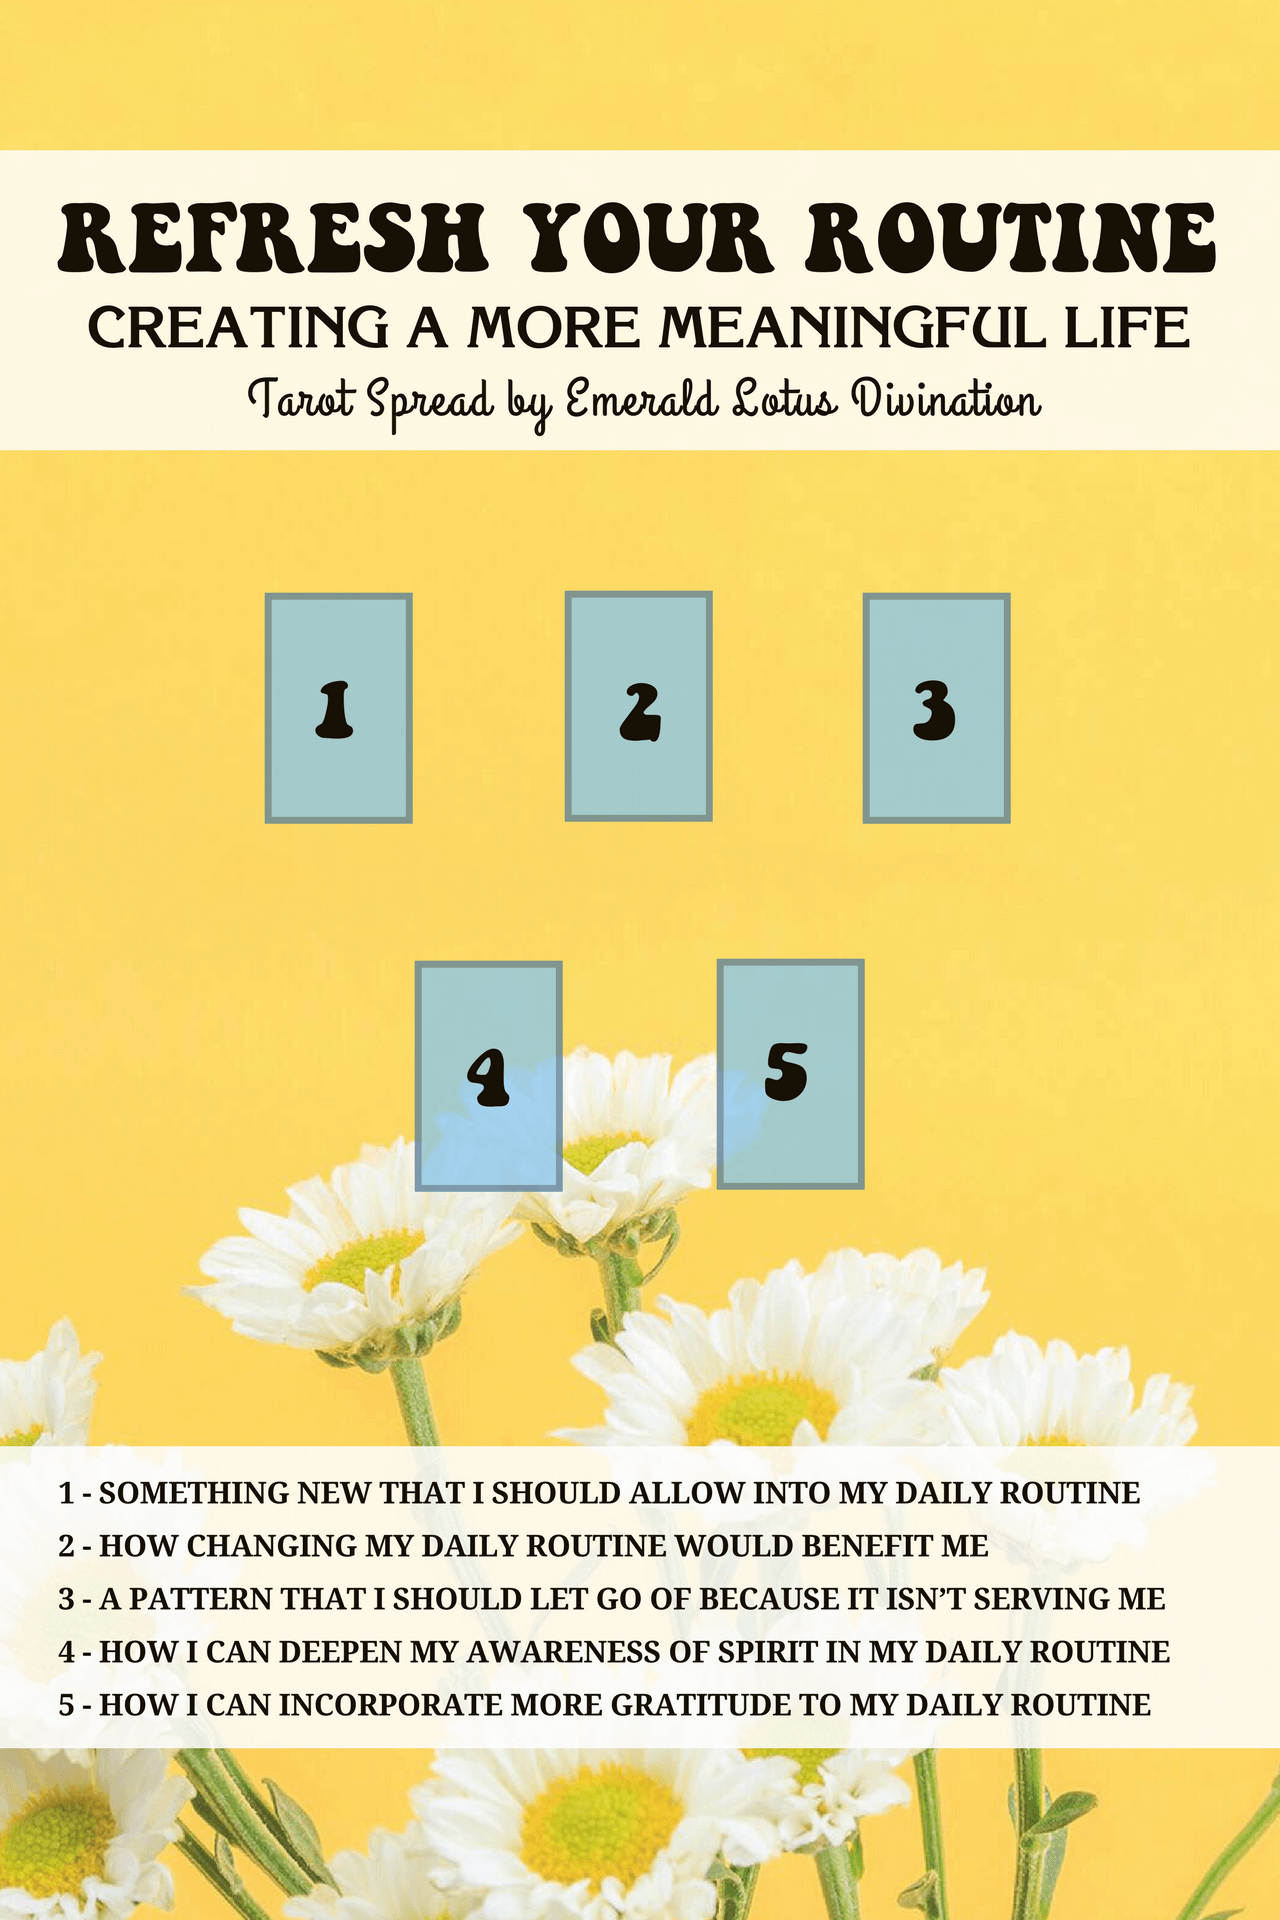 refresh-your-routine-tarot-spread-2.png